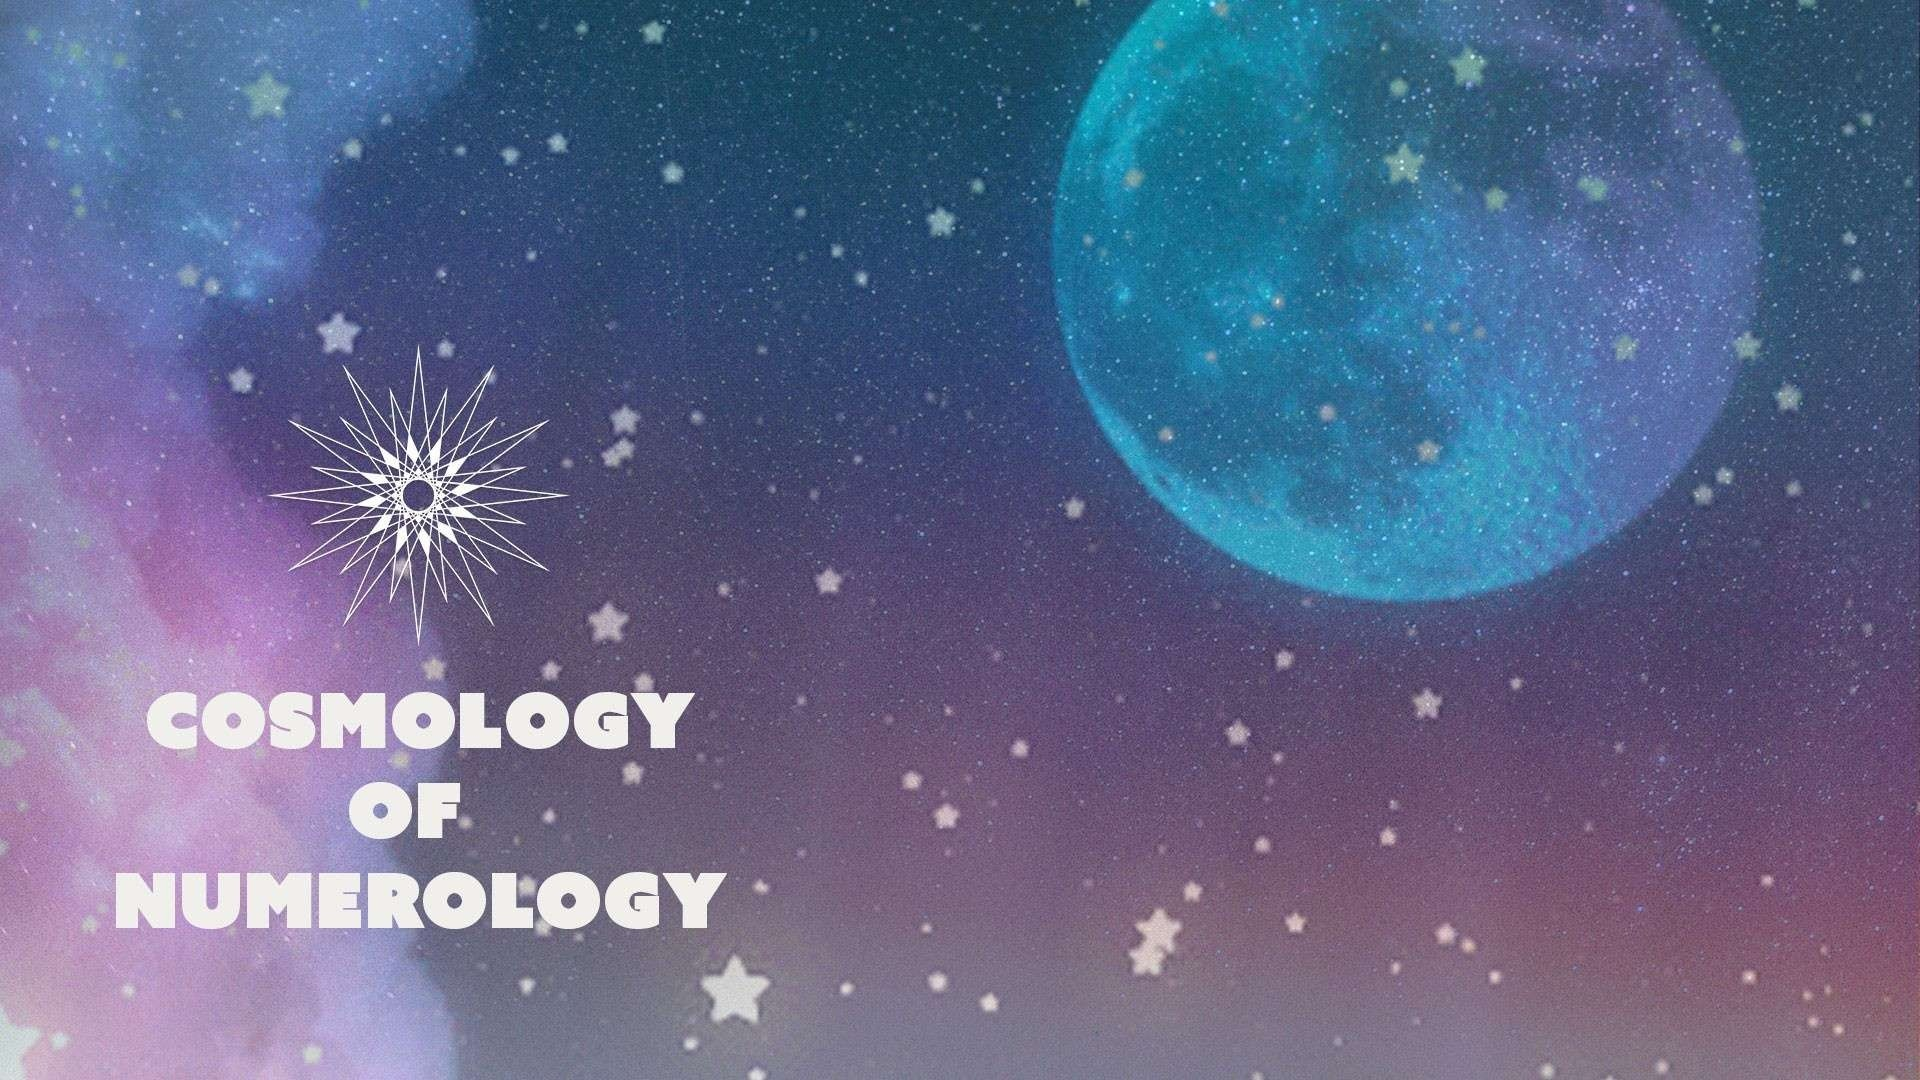 Change Your Stars - Cosmology of Numerology